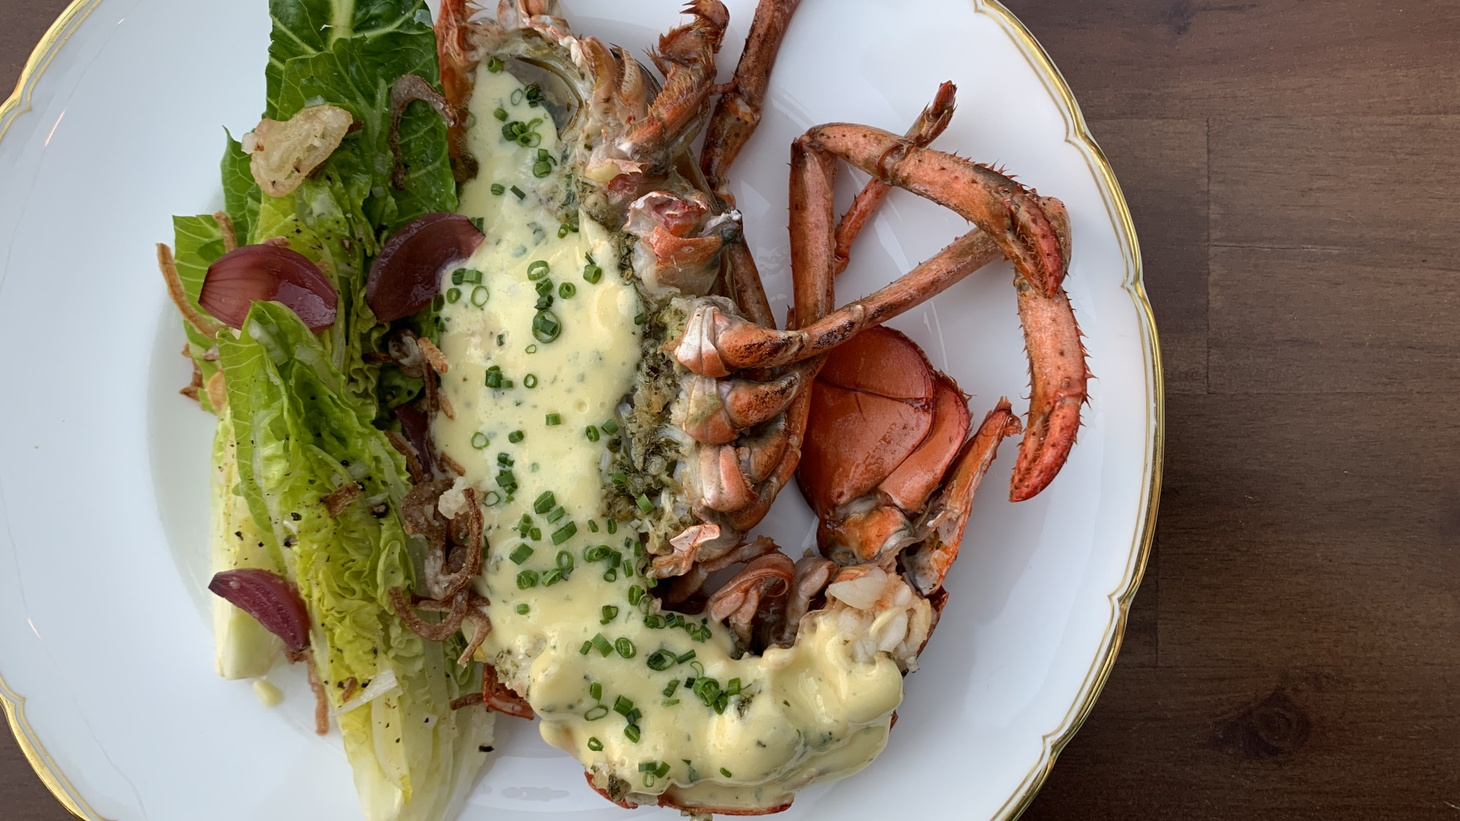 """""""When your priorities are forced to change, you start to reexamine what's truly important in food,"""" says Chef Dave Beran at Pasjoli. He has altered his bistro-style menu to a pandemic audience while still maintaining a French flair."""